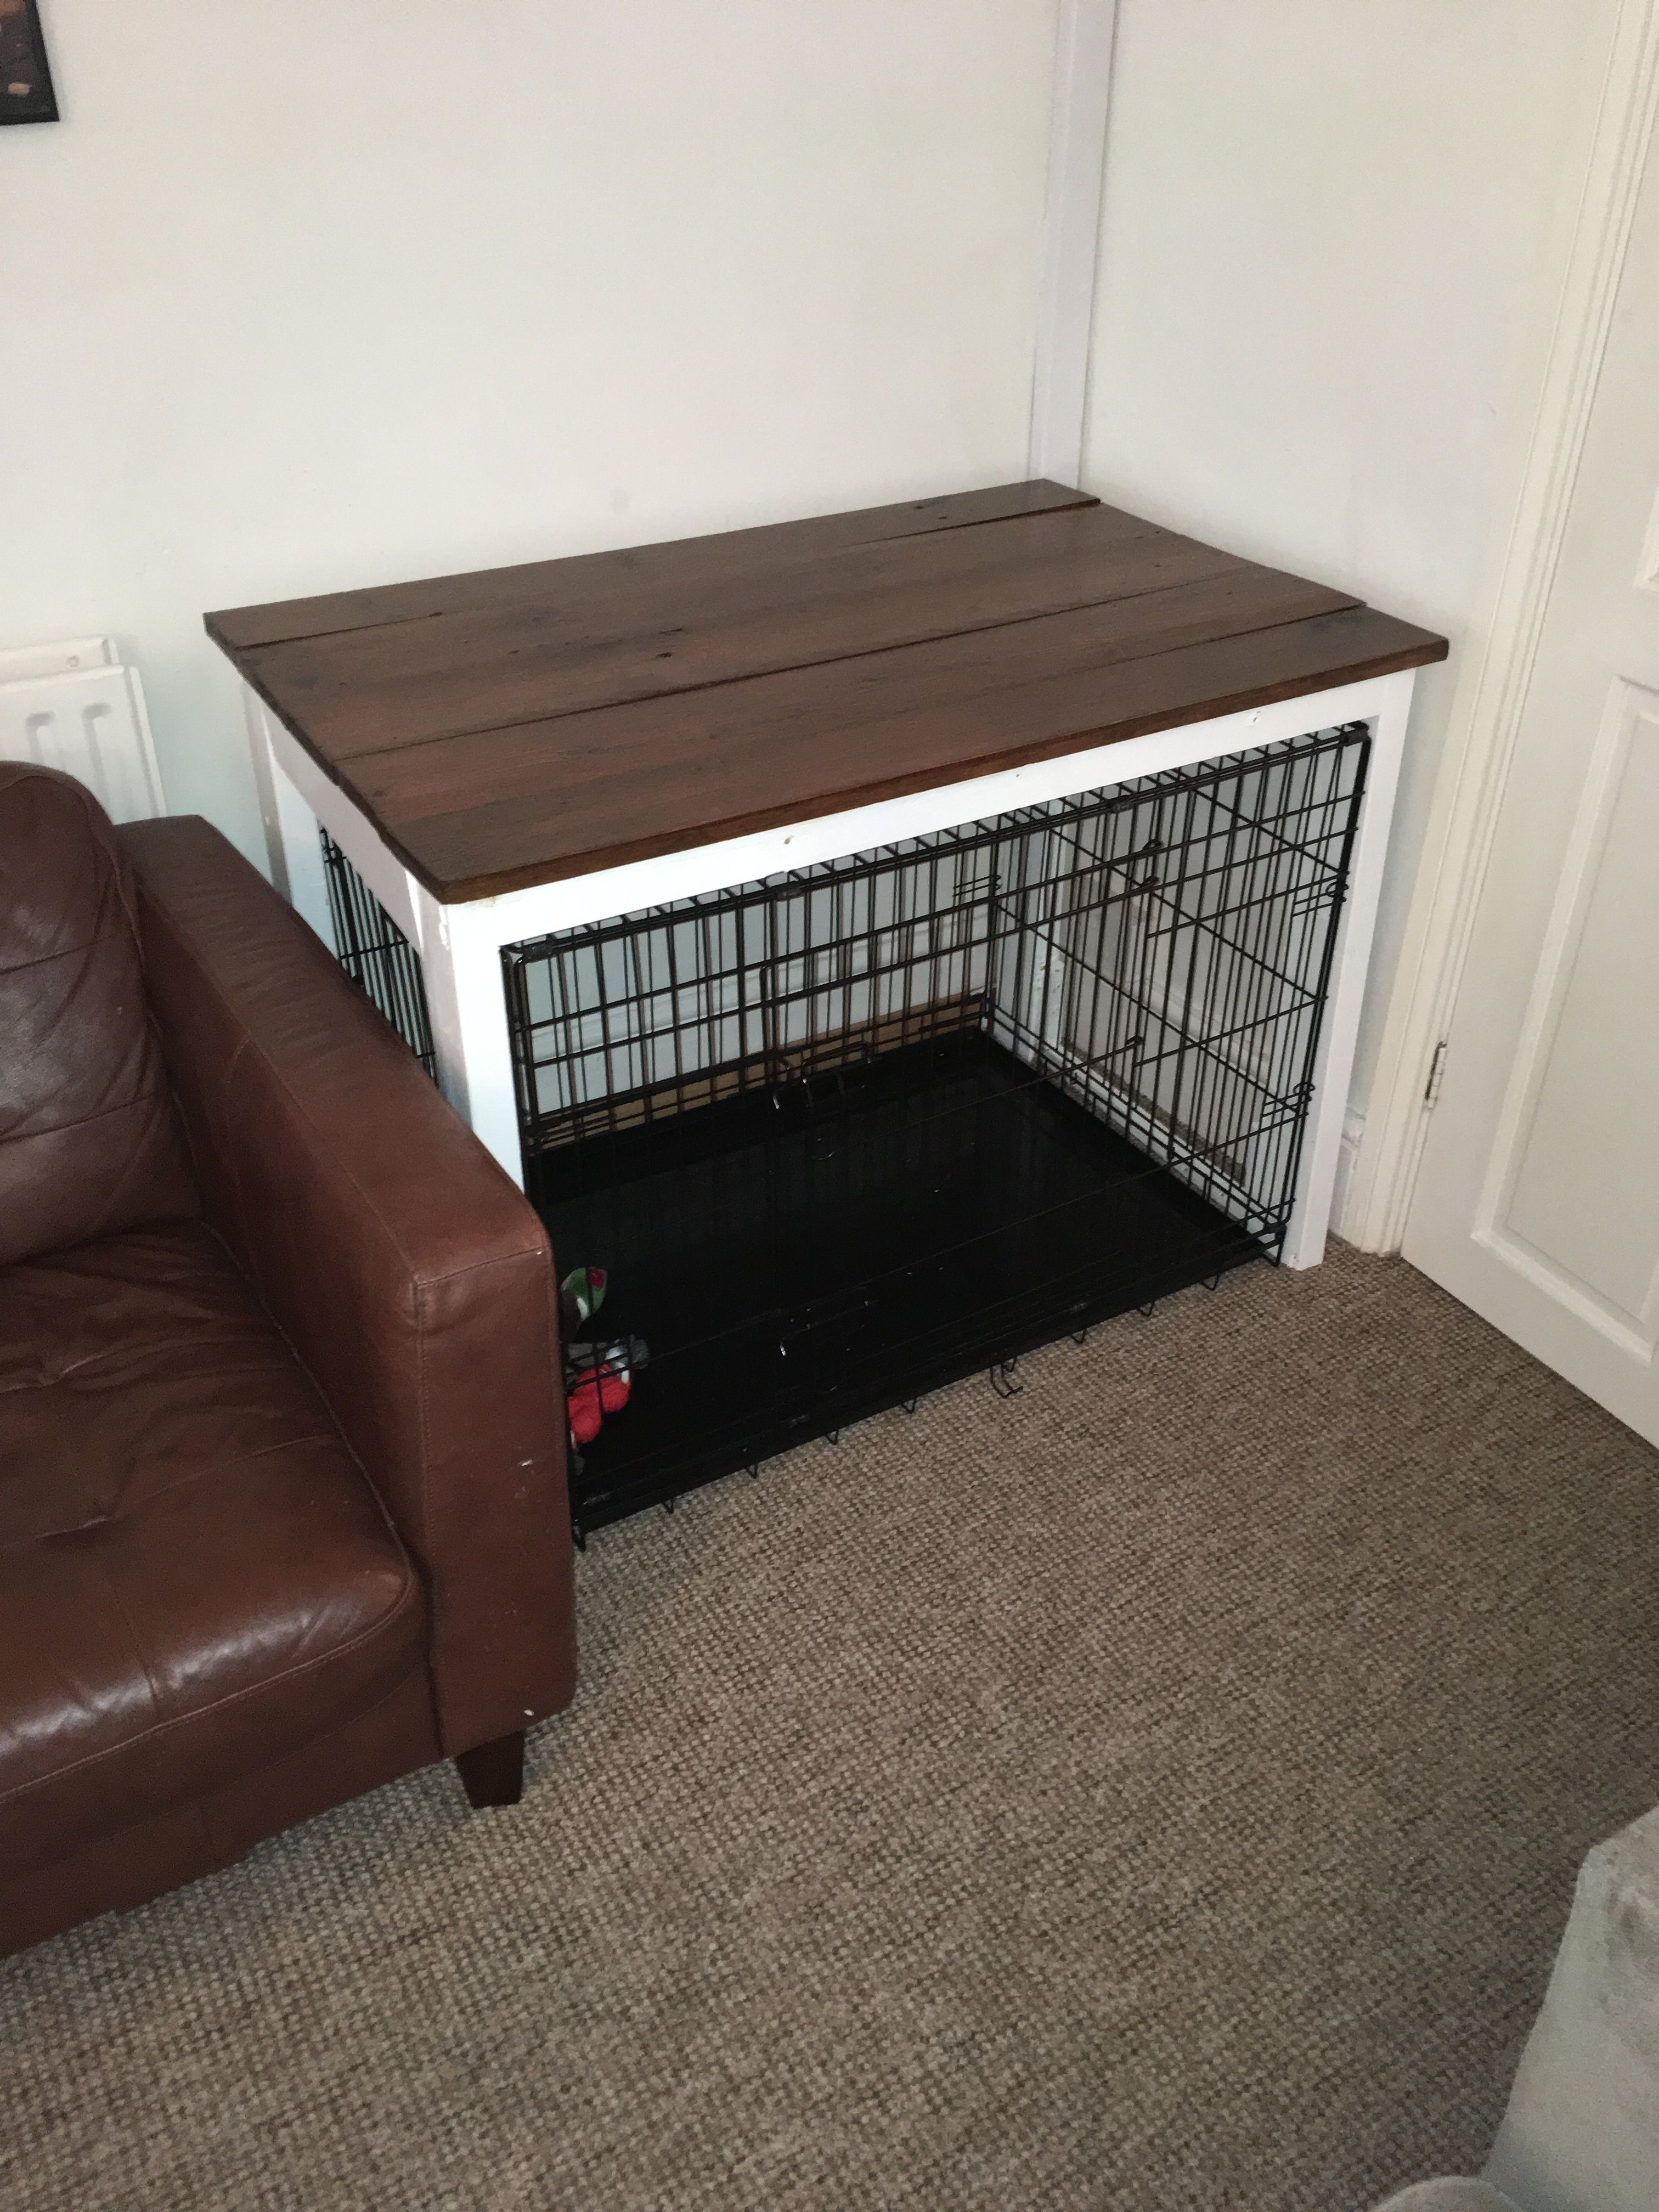 Dog Crate Table Surround Nice Hack Idea To Make The Crate Blend In Nicely Dogcrate Dogcratetable Dogfur Diy Dog Crate Dog Crate Furniture Dog Crate Table